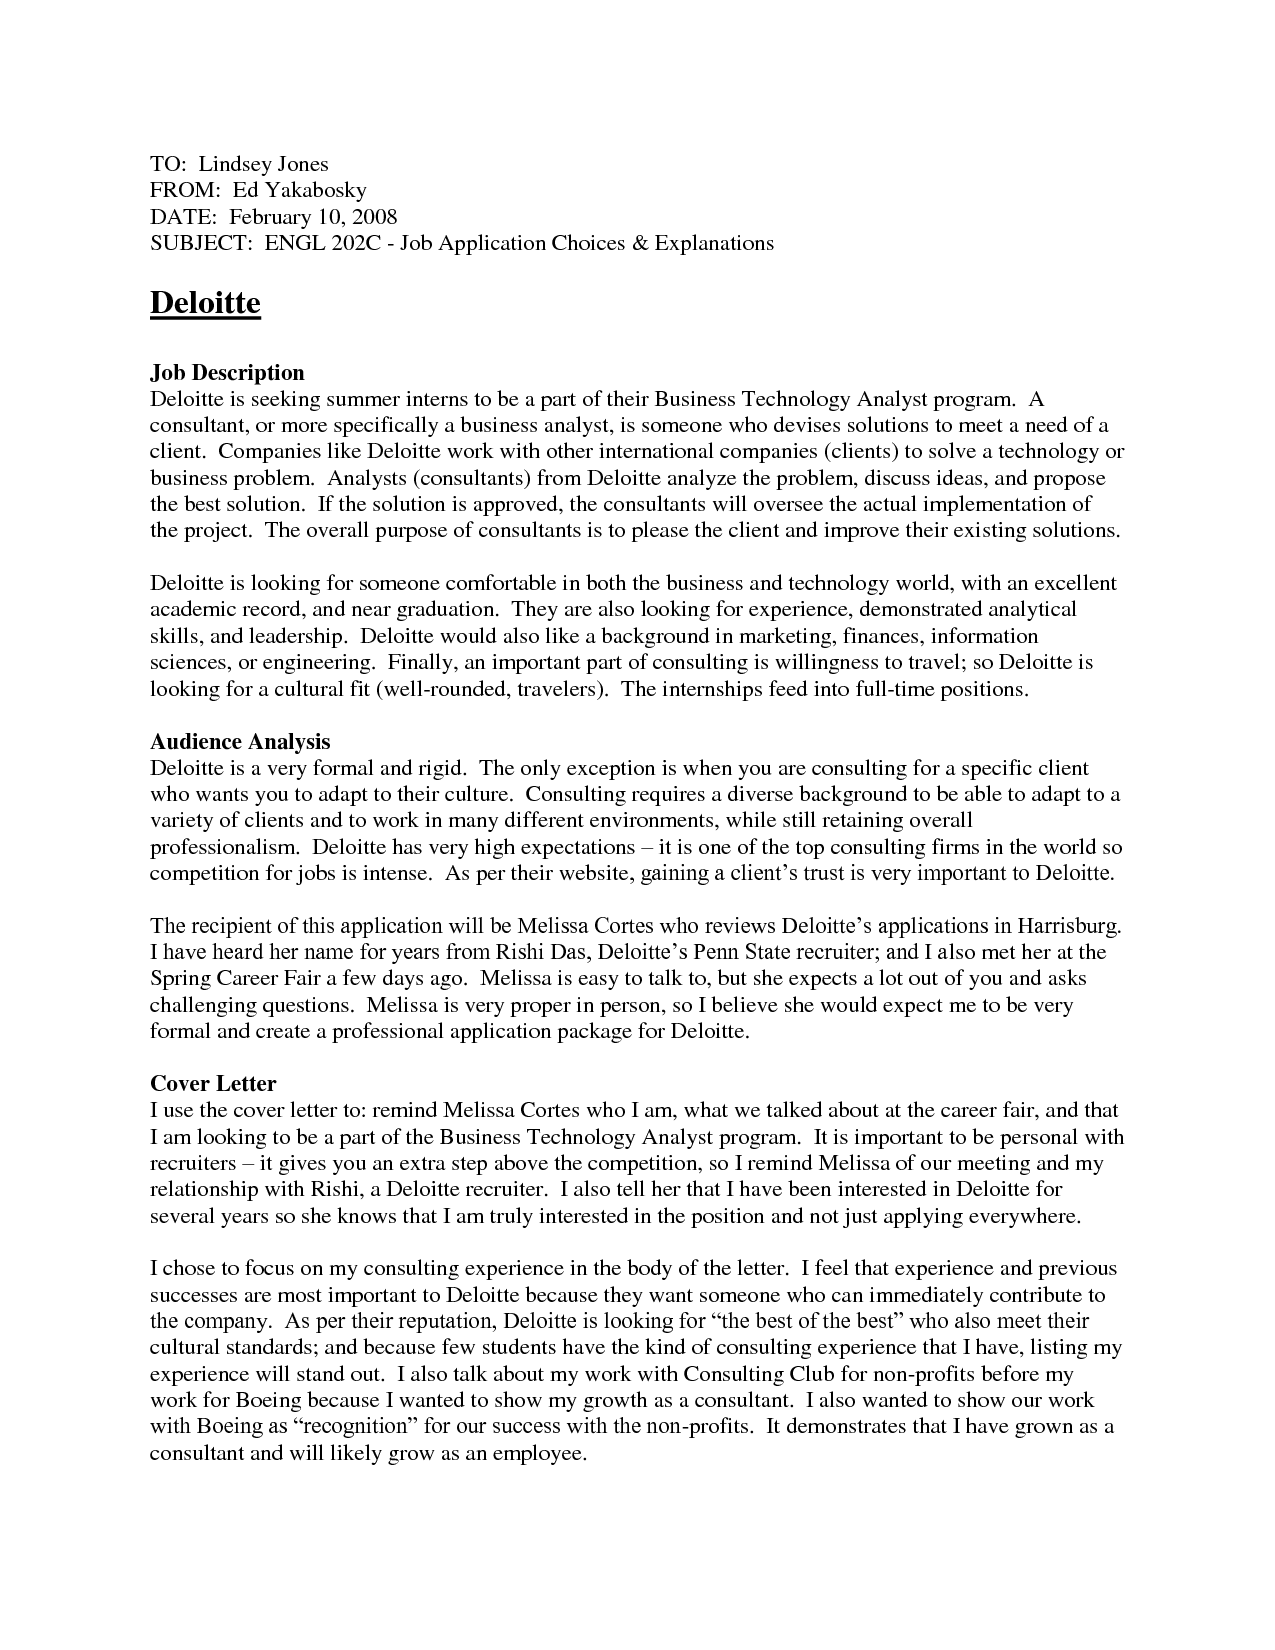 Pharmacy Technician Letter Format - SampleBusinessResume.com ...